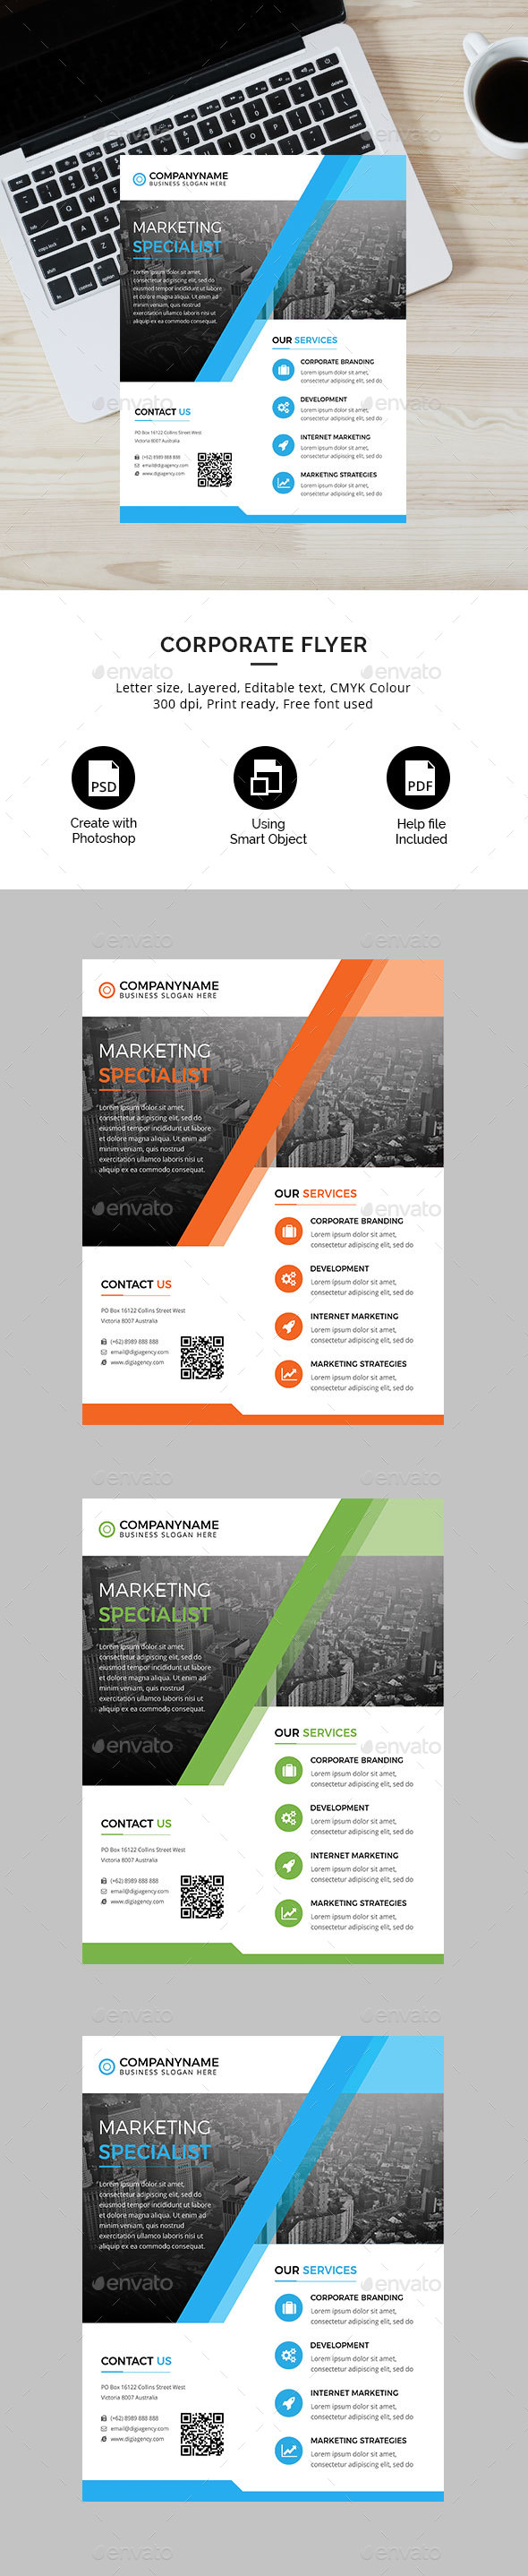 Business Corporate Flyer - Corporate Flyers